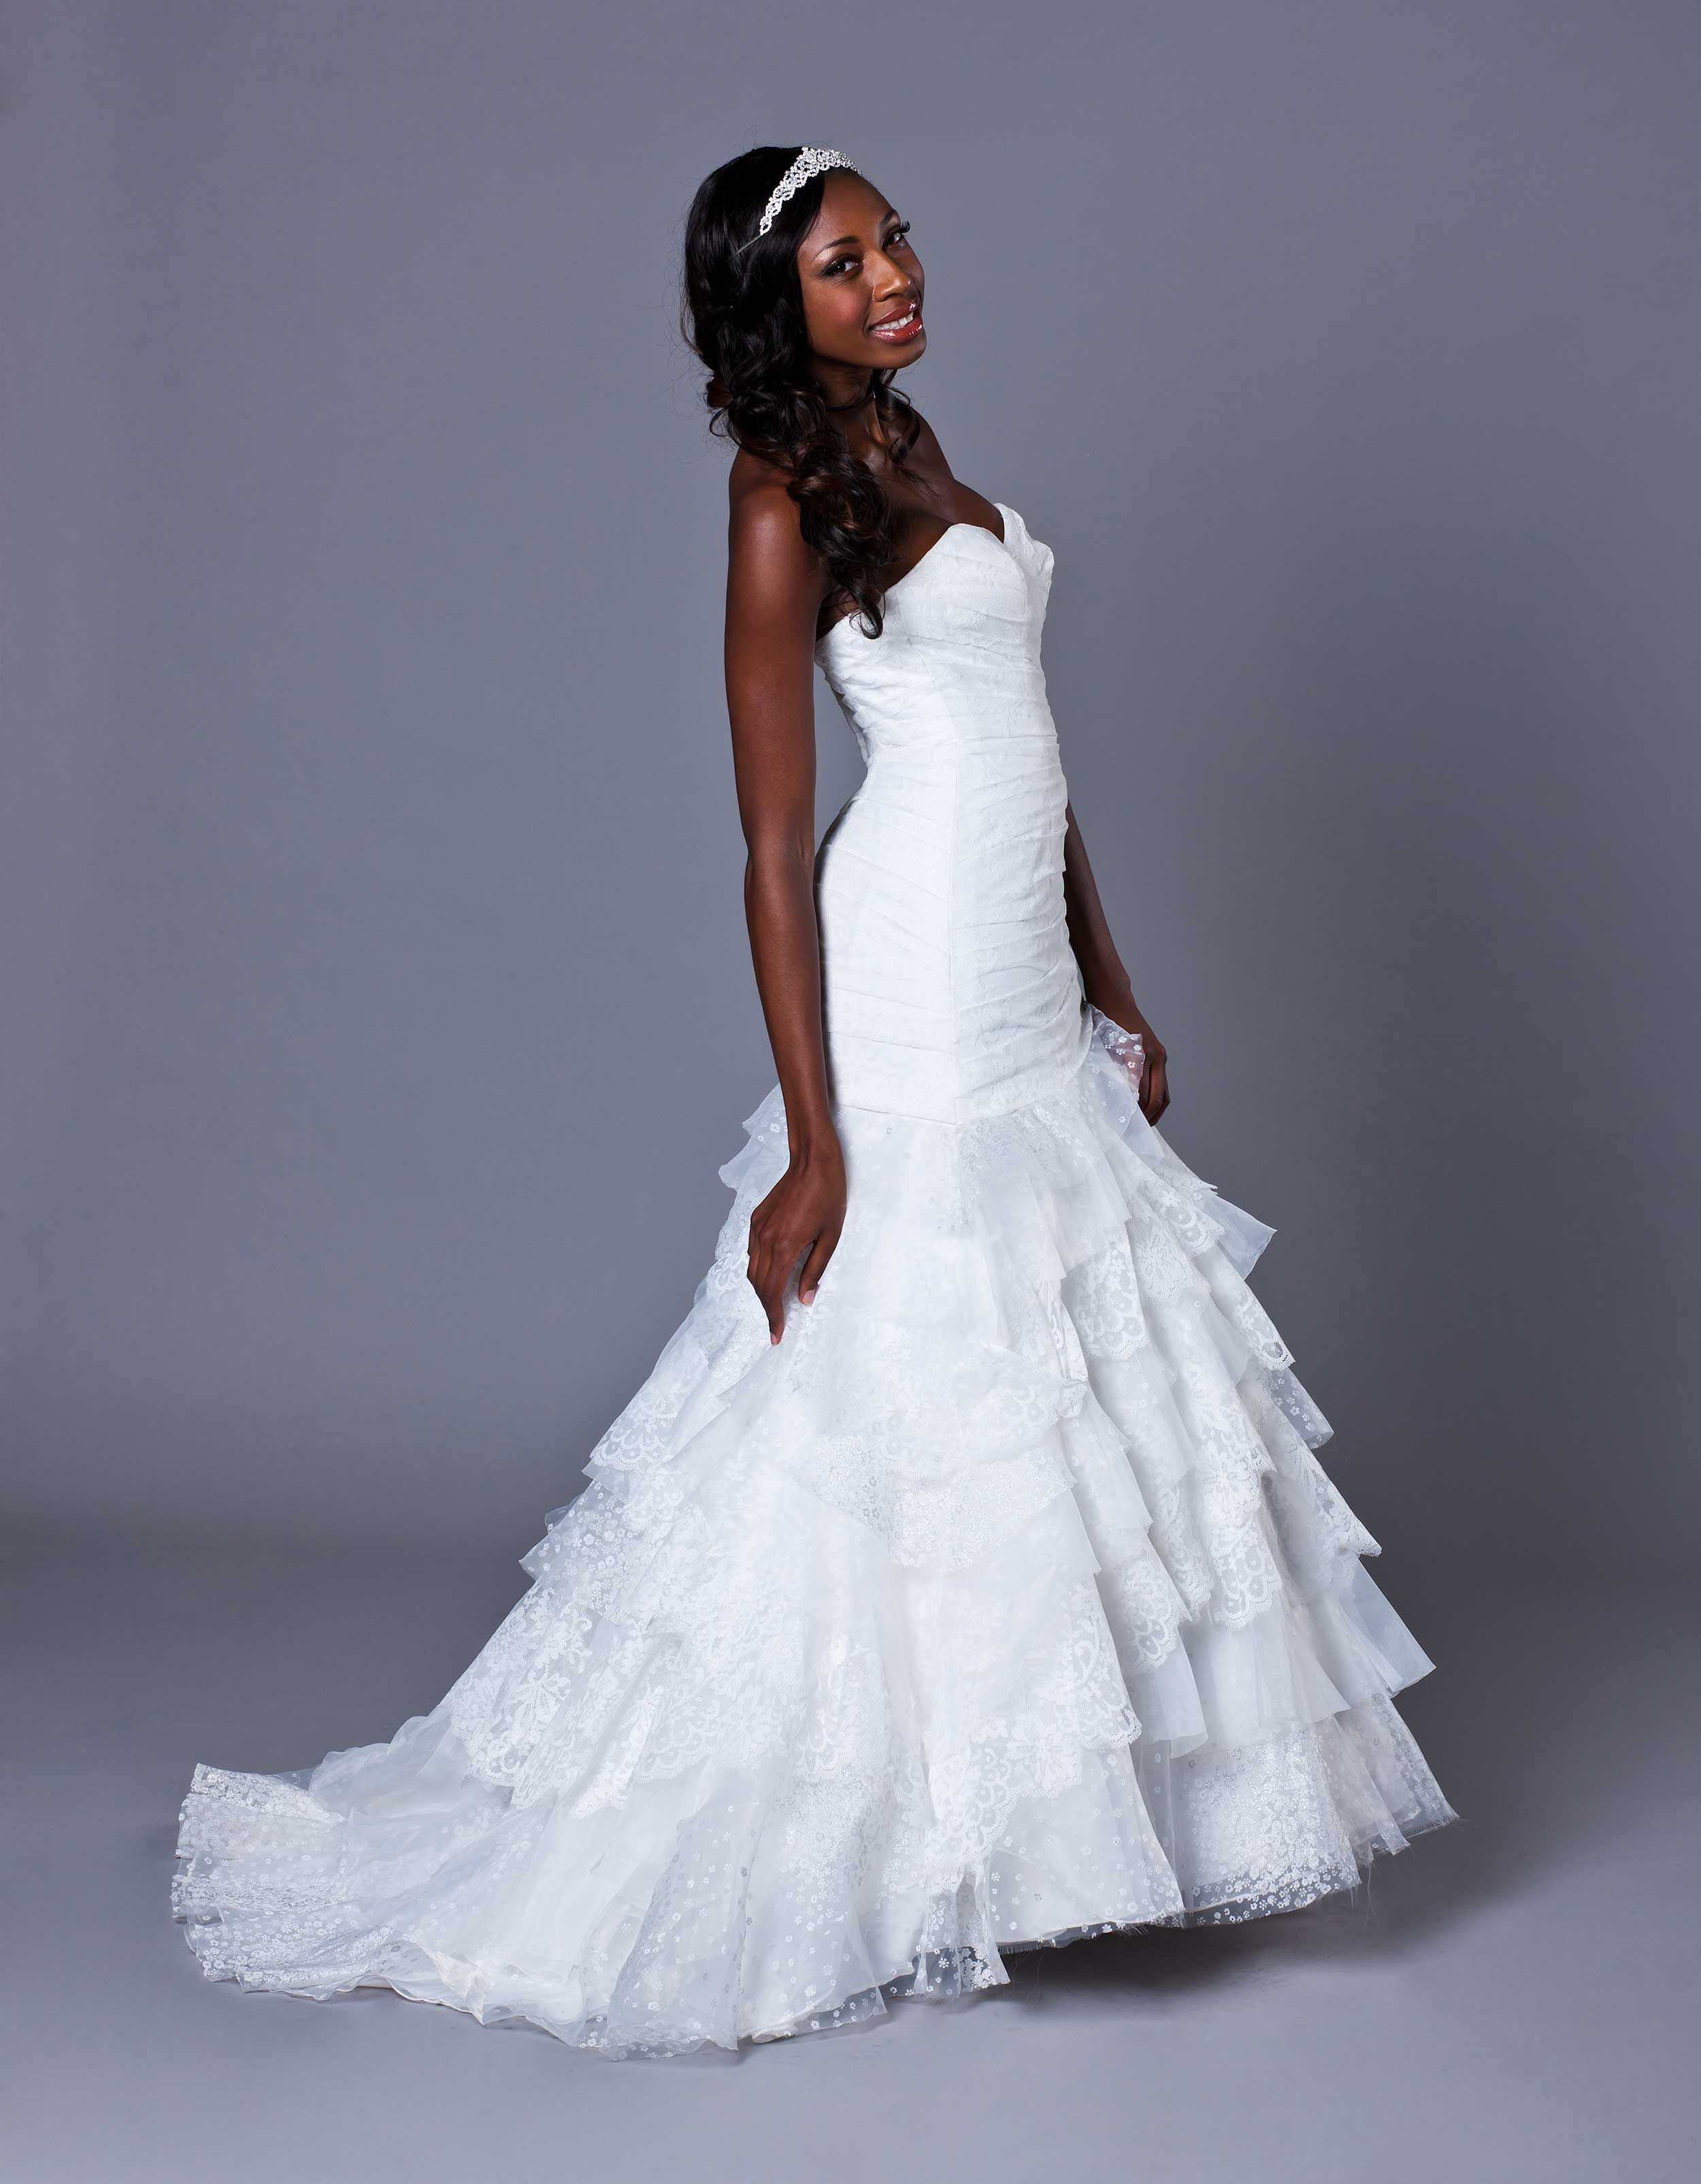 Wedding dresses prices south africa bridesmaid dresses for Wedding dresses prices and pictures